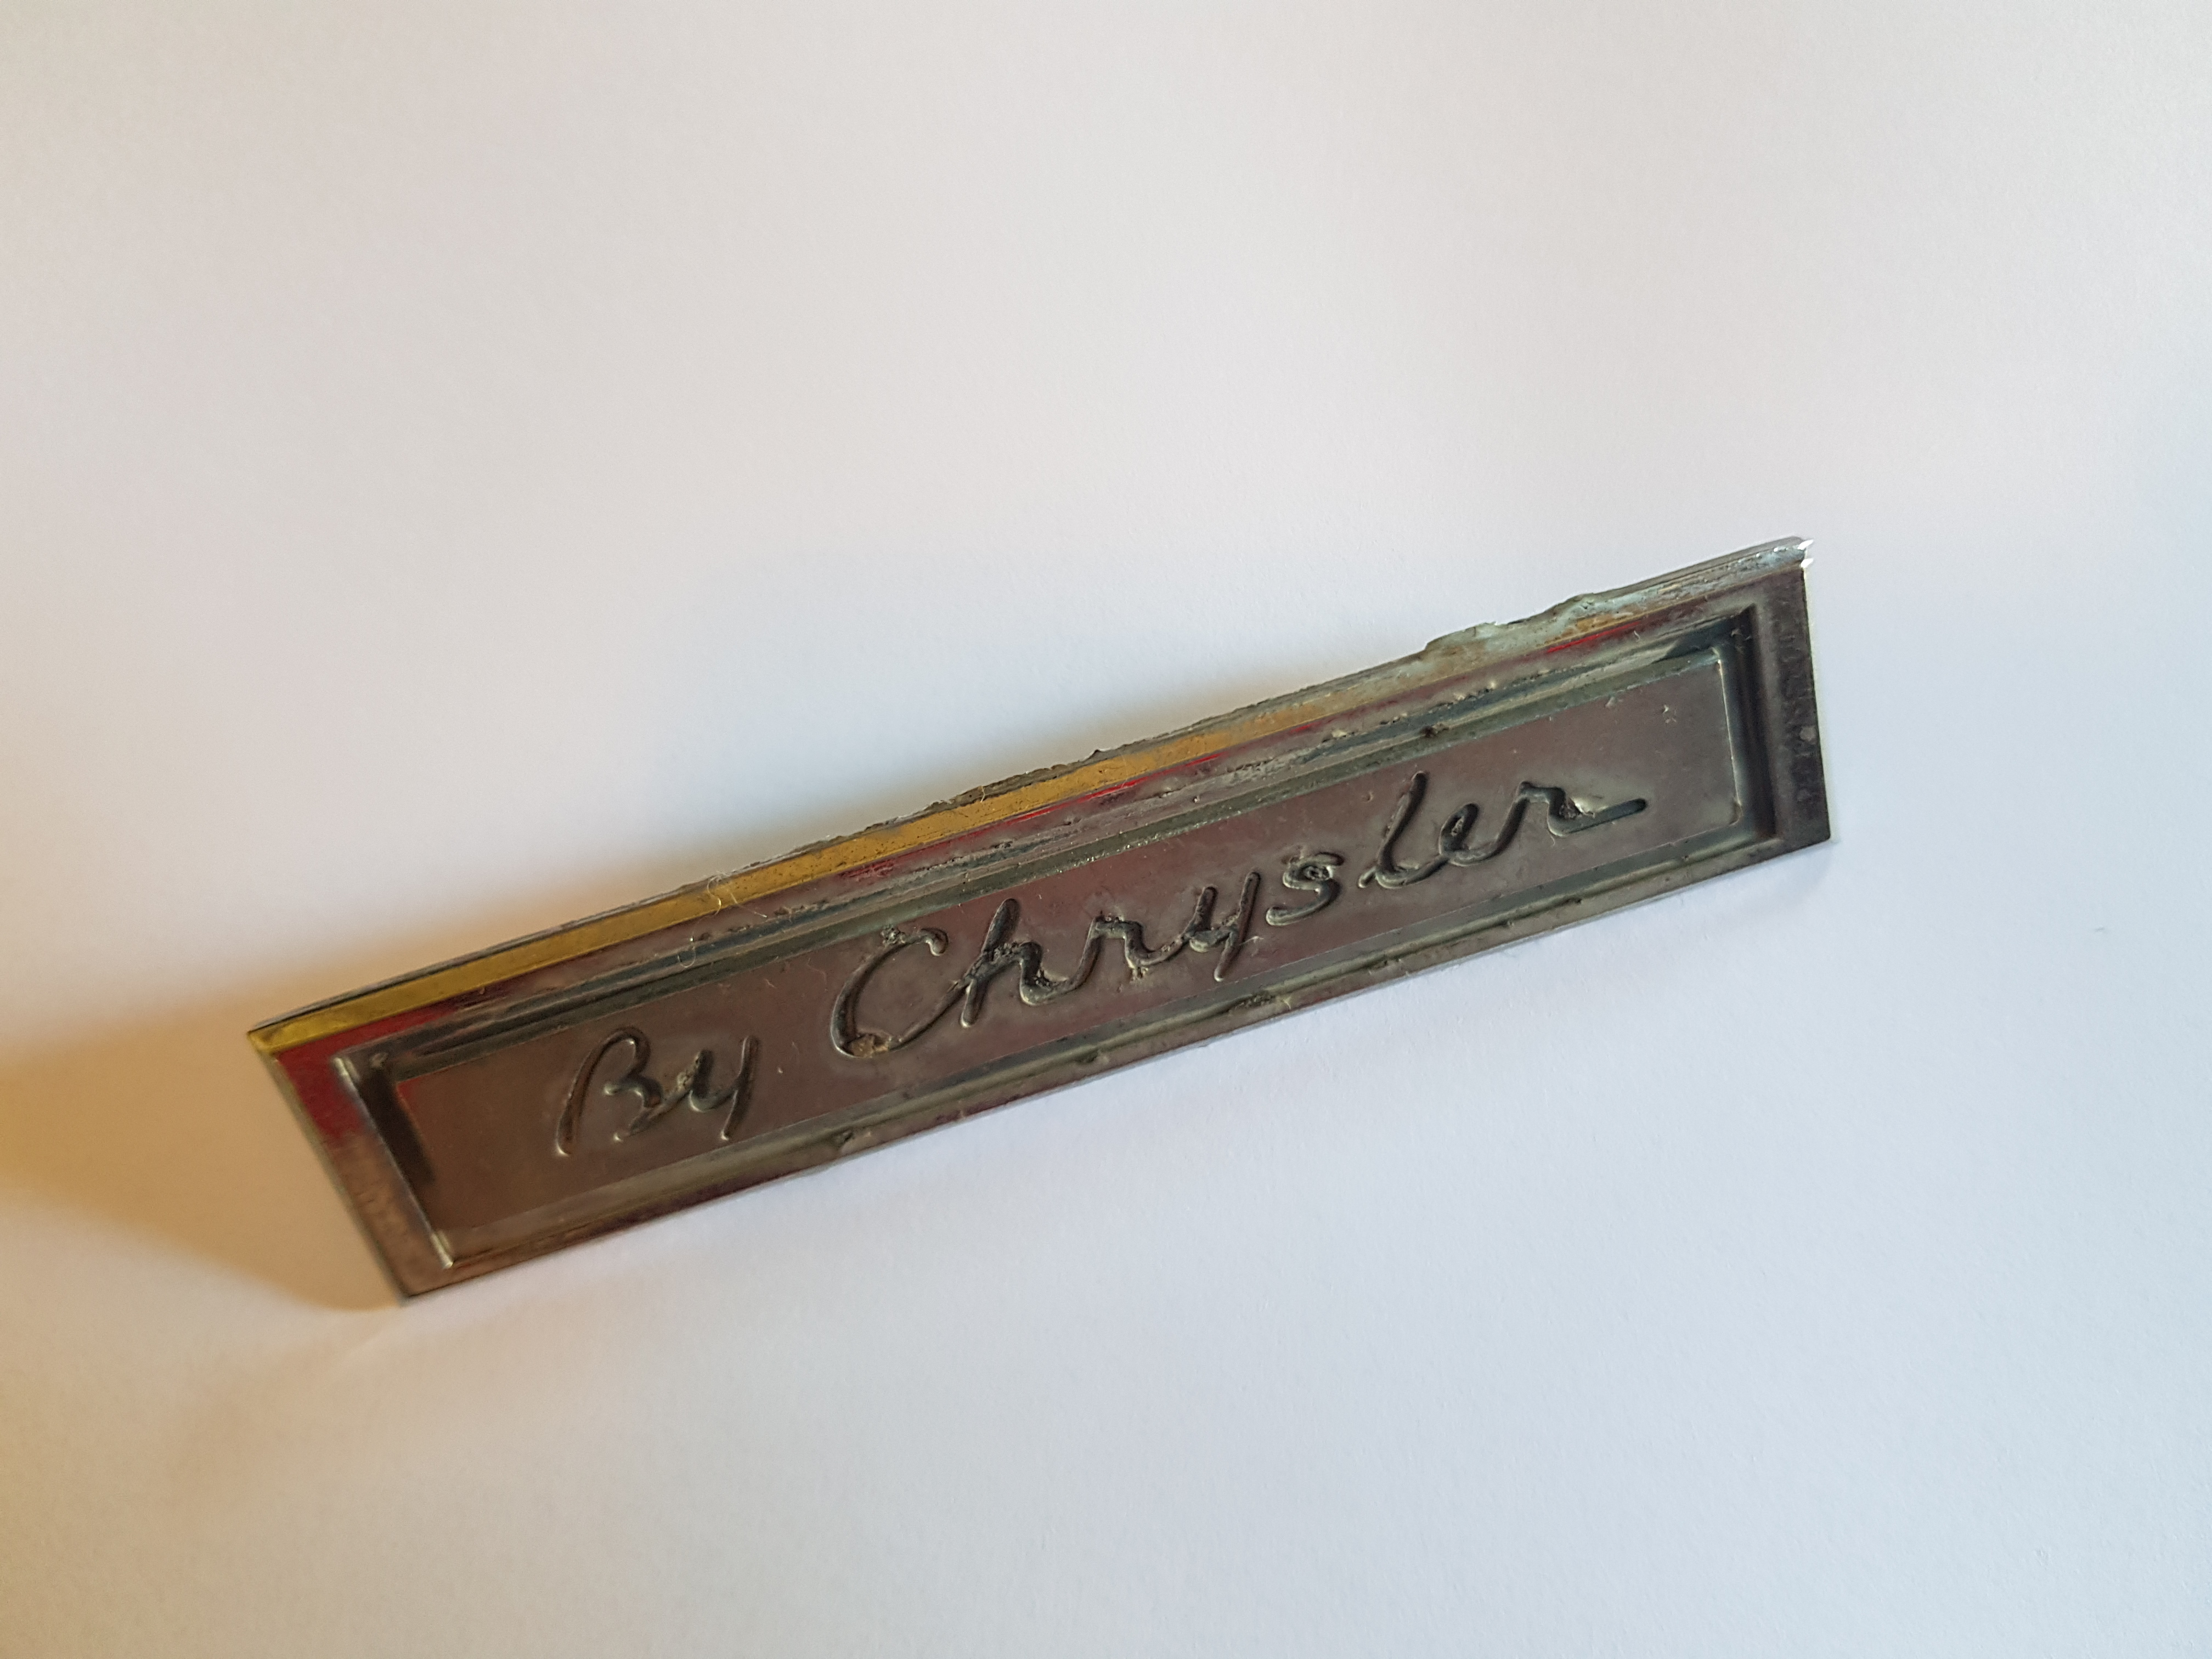 'By Chrysler' Badge, salvaged